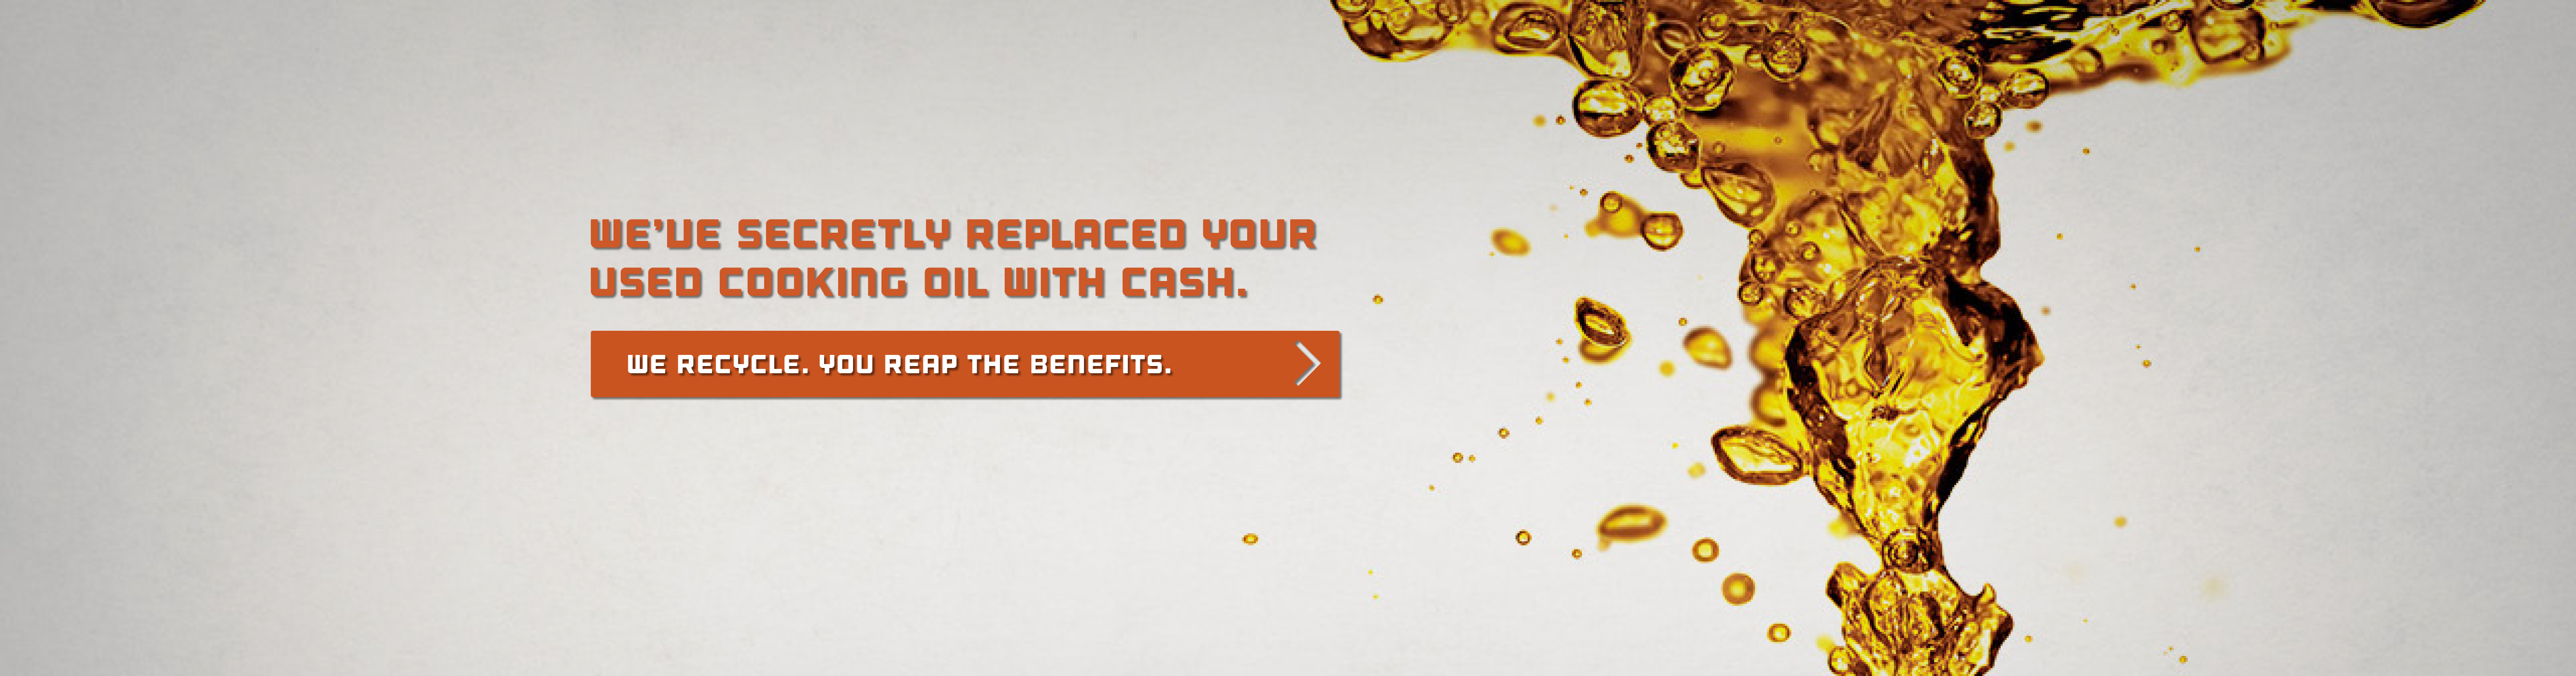 We've secretly replaced your used cooking oil with cash.